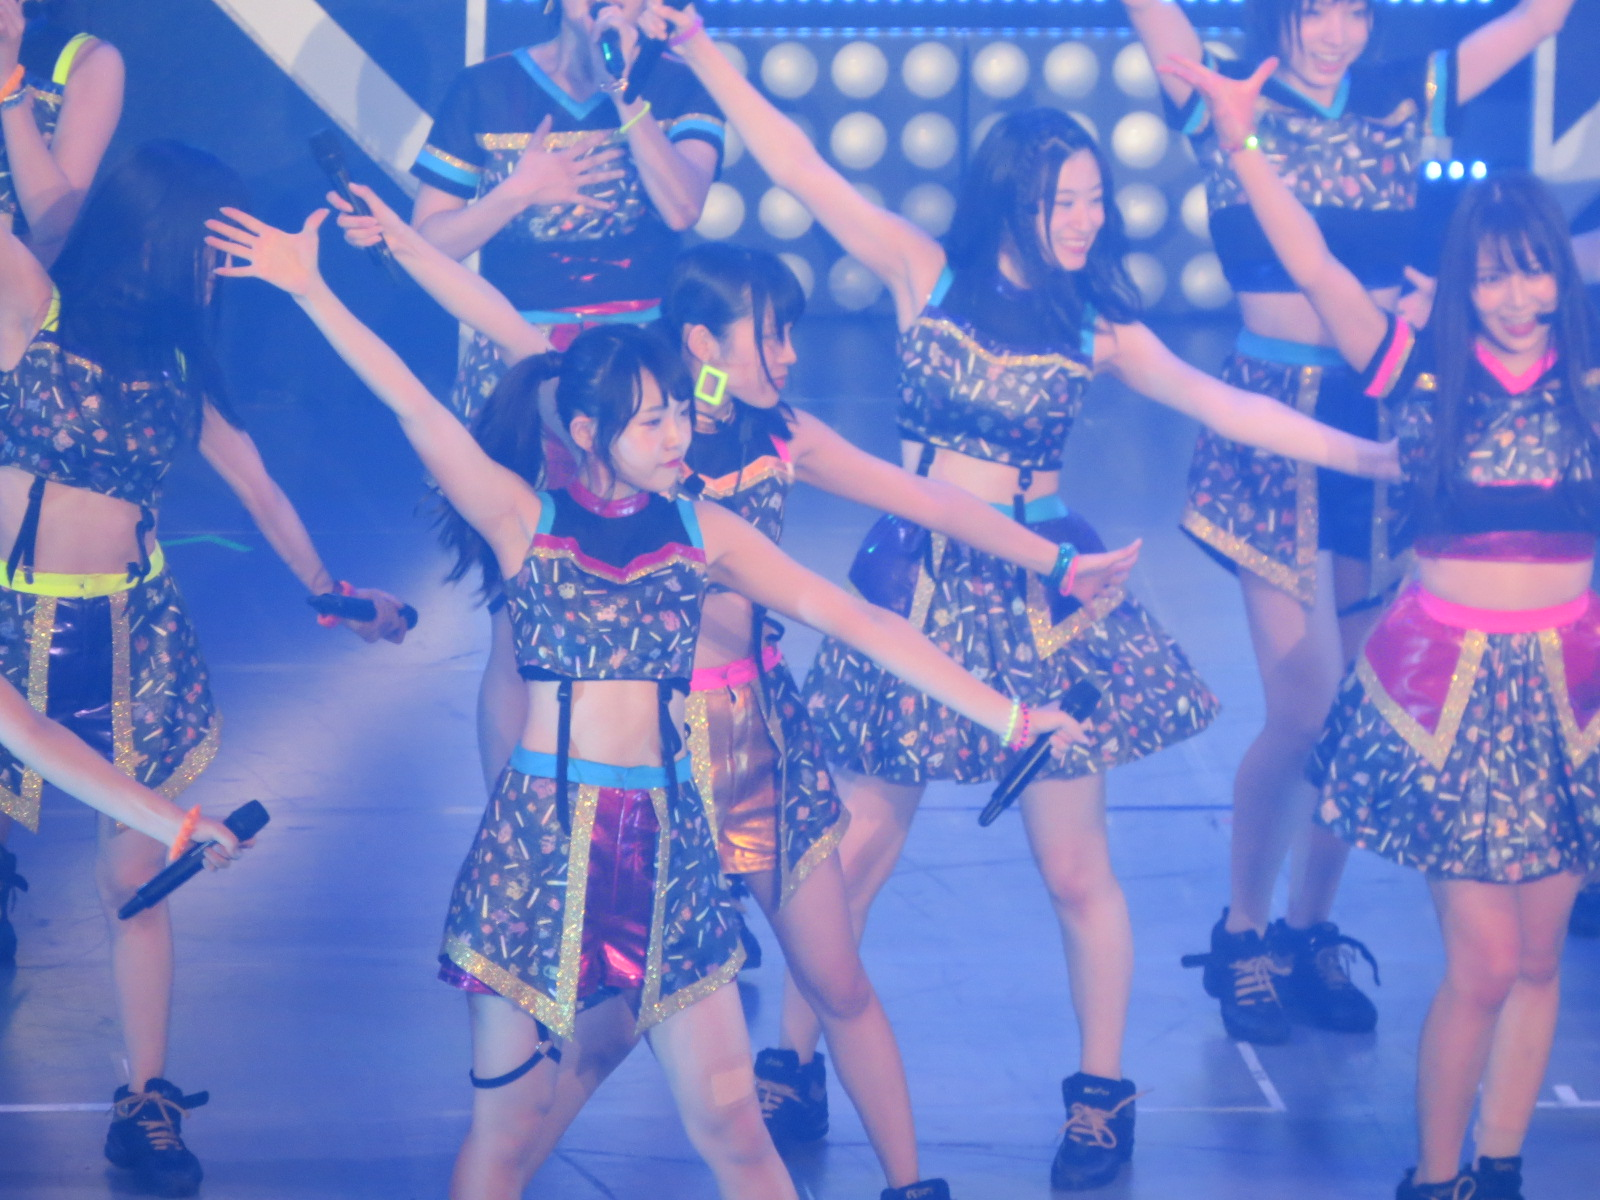 NMB48 LIVE TOUR 2018 in Summer・石川公演の画像-079